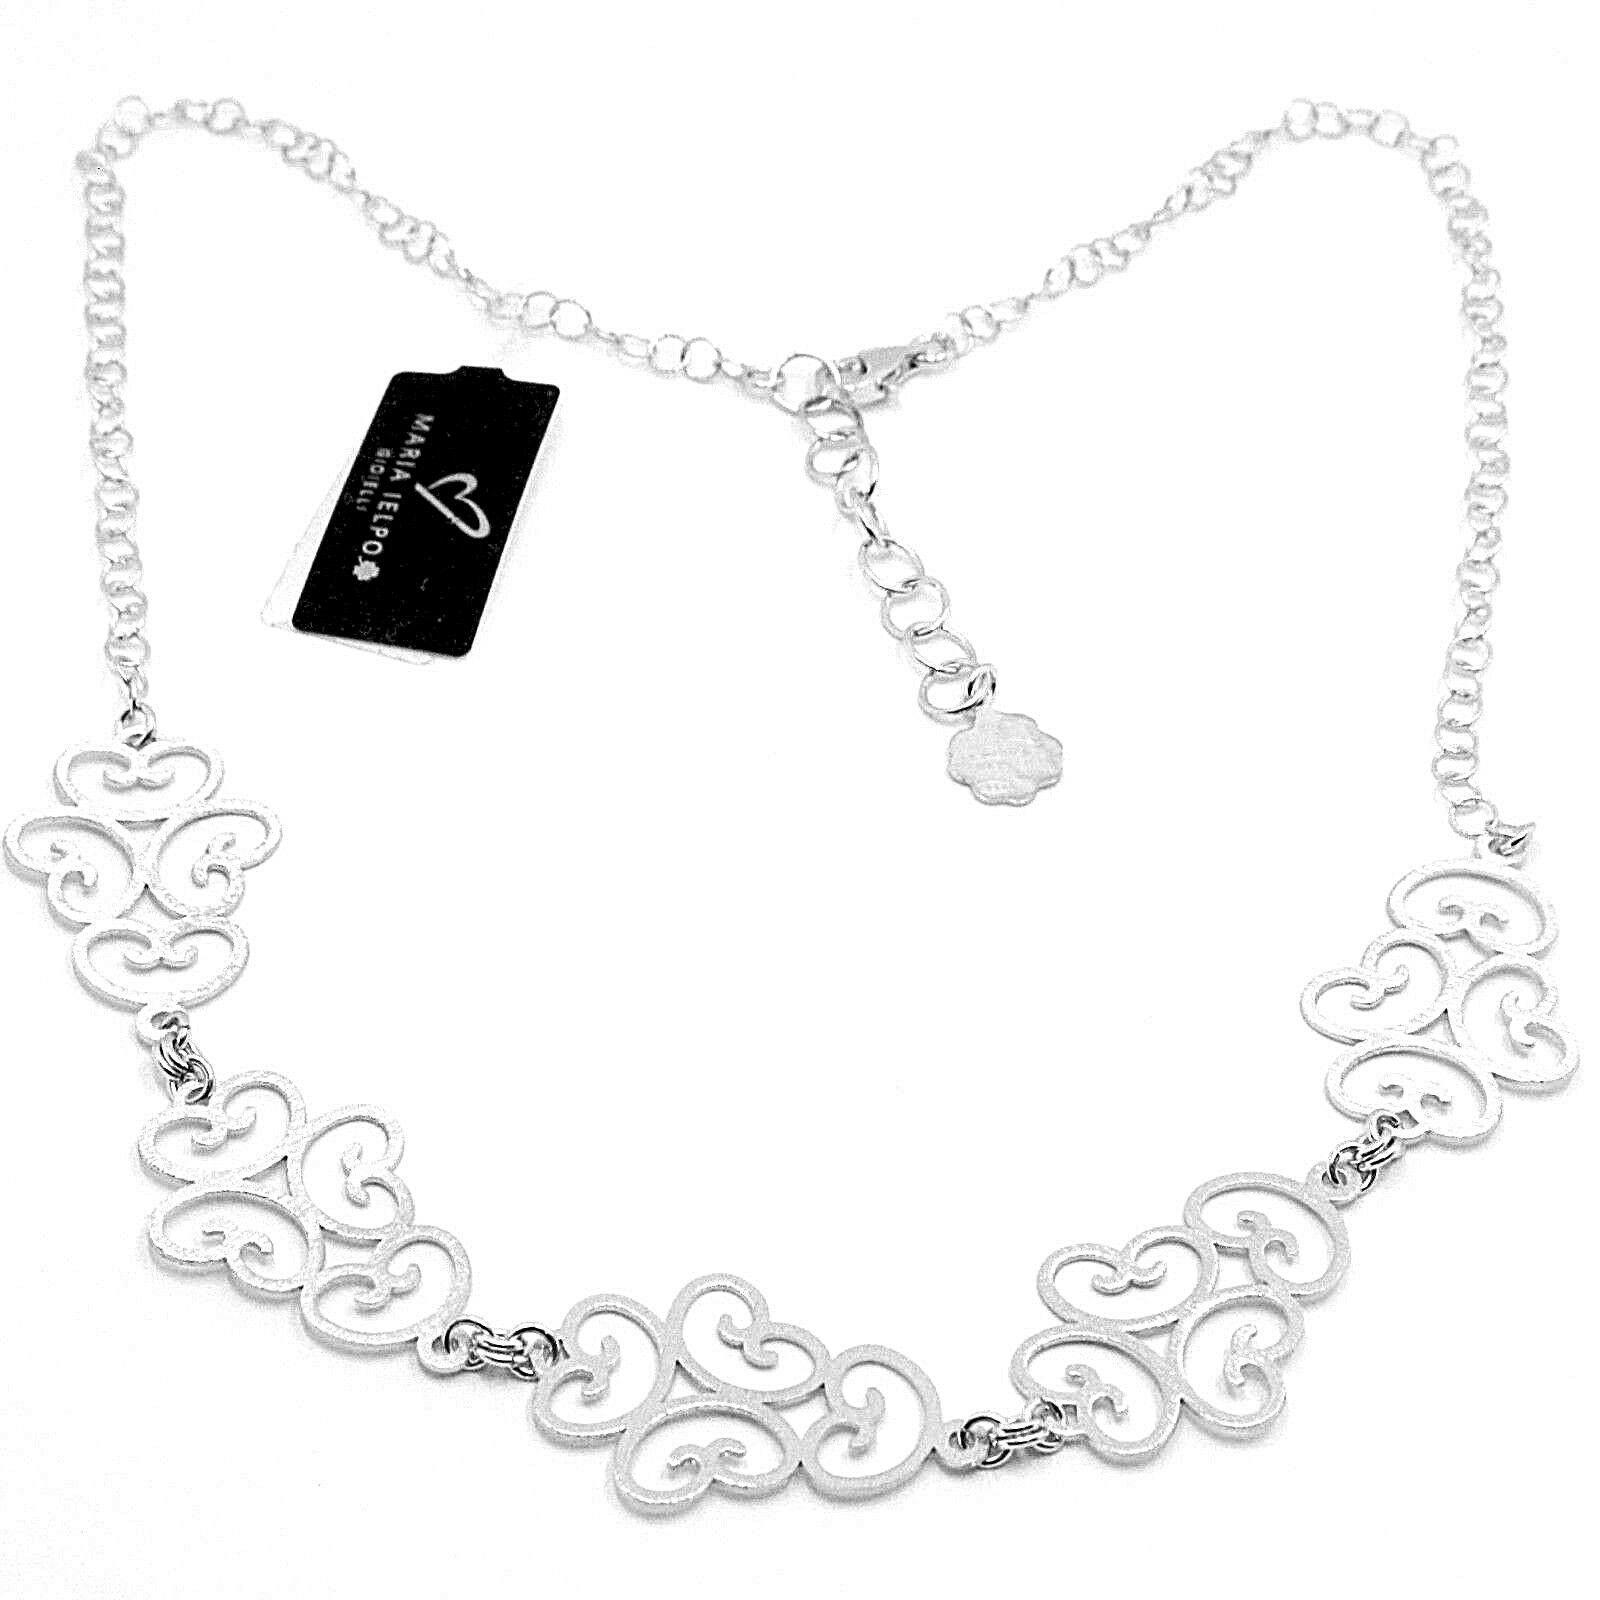 Necklace Silver 925, Satin, Pattern Floral By Maria Ielpo , Made IN Italy